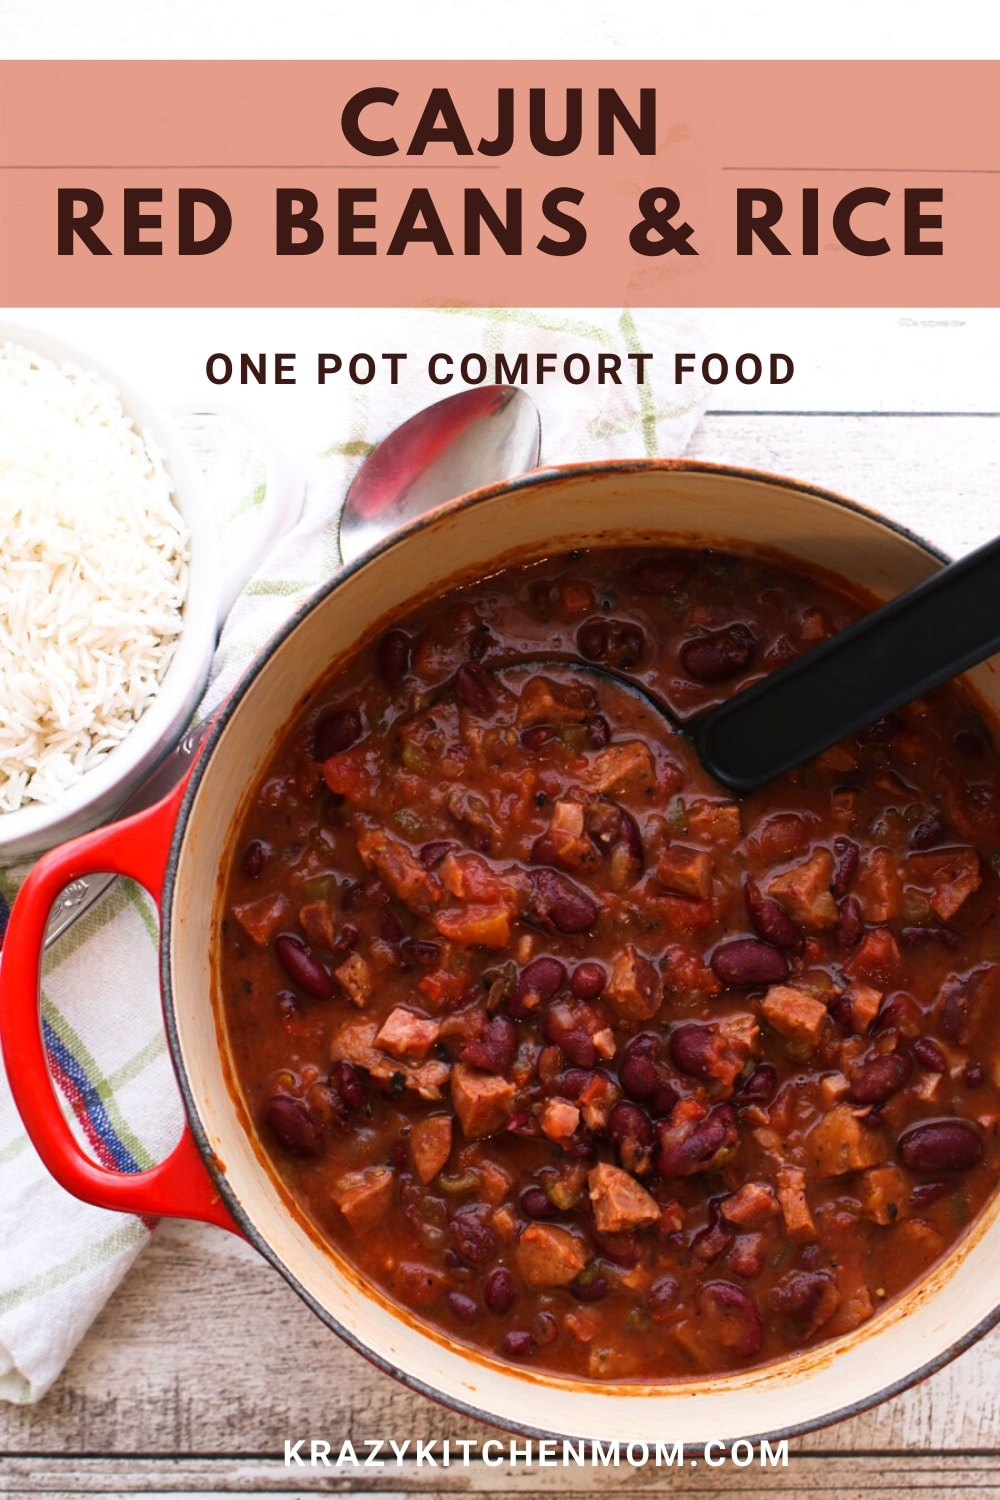 Cajun Red Beans and Rice a traditional southern comfort food. Smoky and spicy - cooked low and slow to create a rich spicy gravy served over white rice.  via @krazykitchenmom